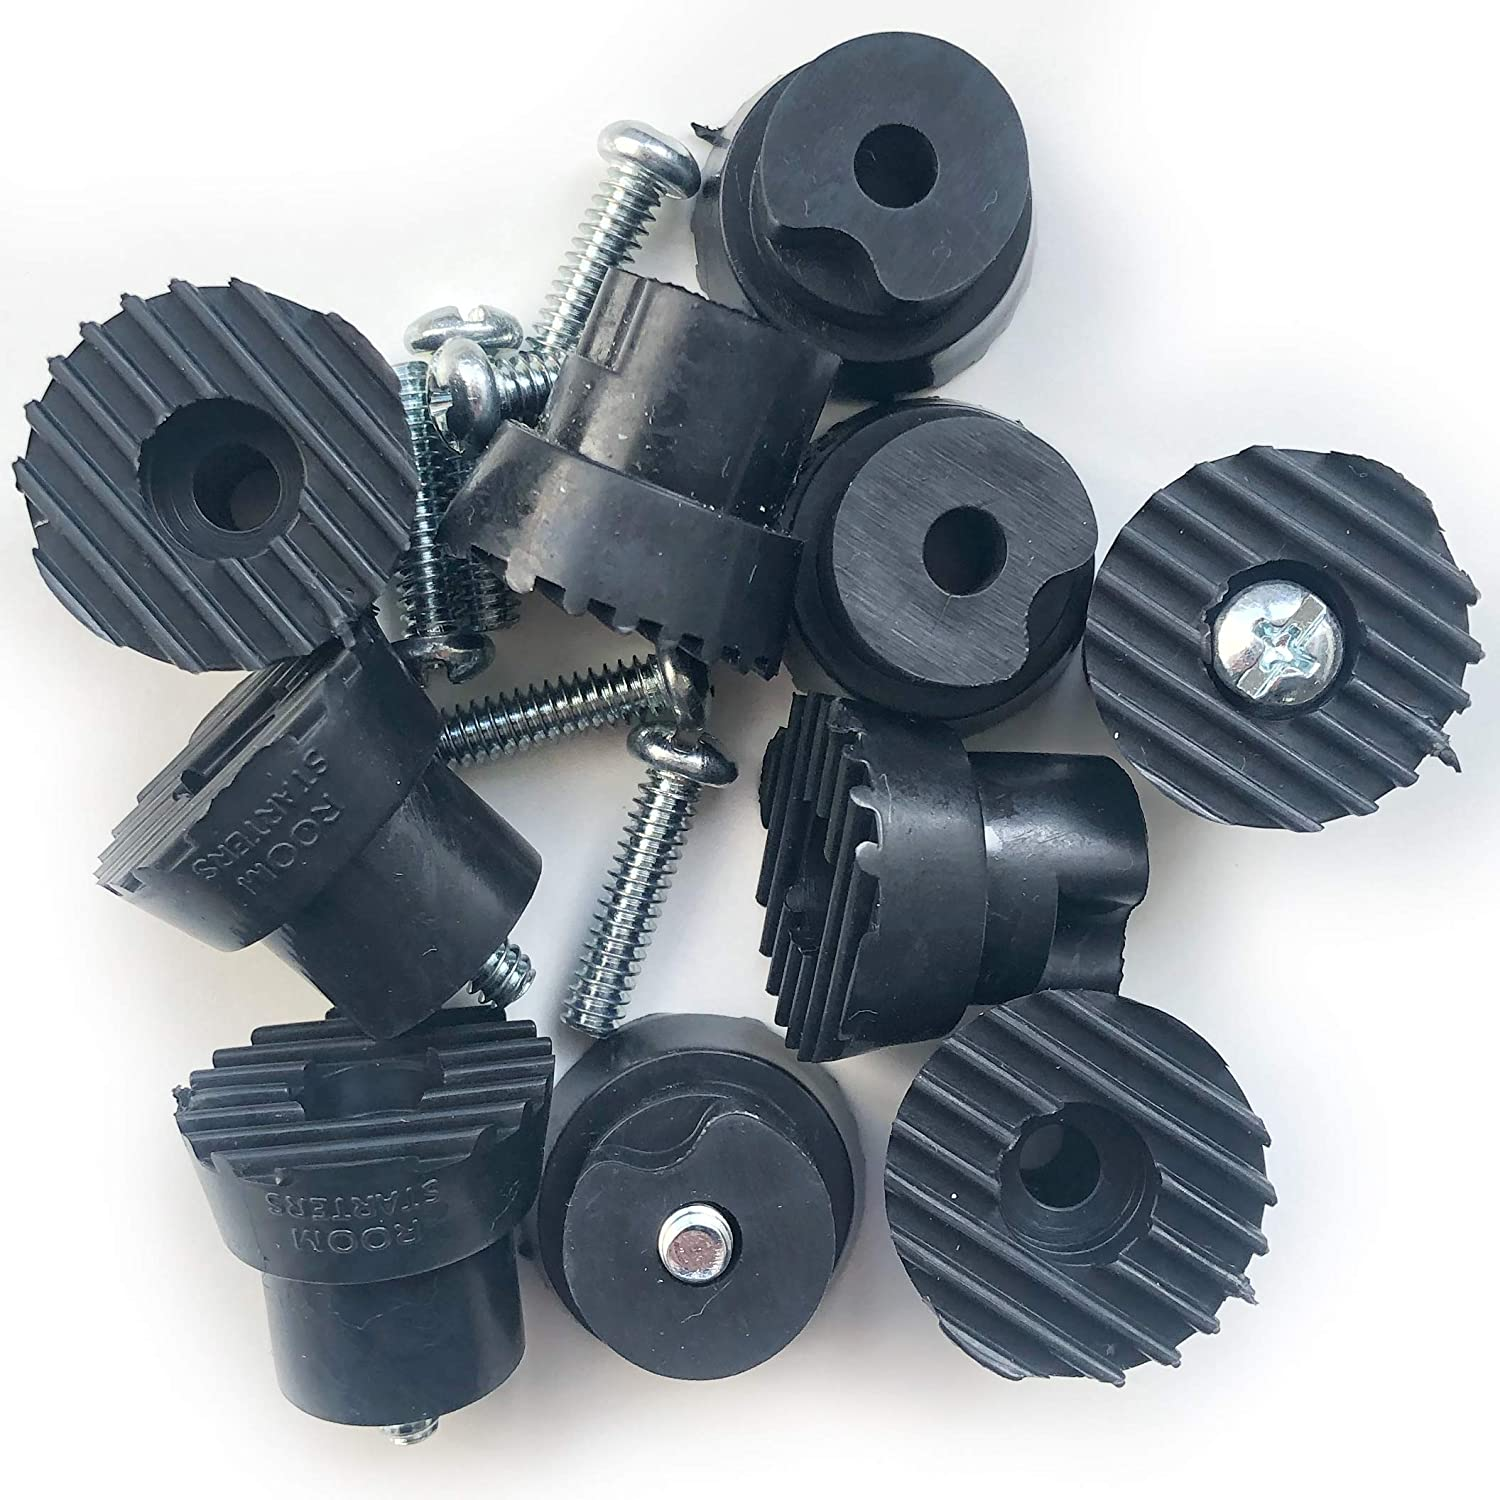 Black, 10 Pack Kick Down Door Stop Ultra Grip Rubber Replacement Tip 10 Pack with Screw by ROOM STARTERS Style 2